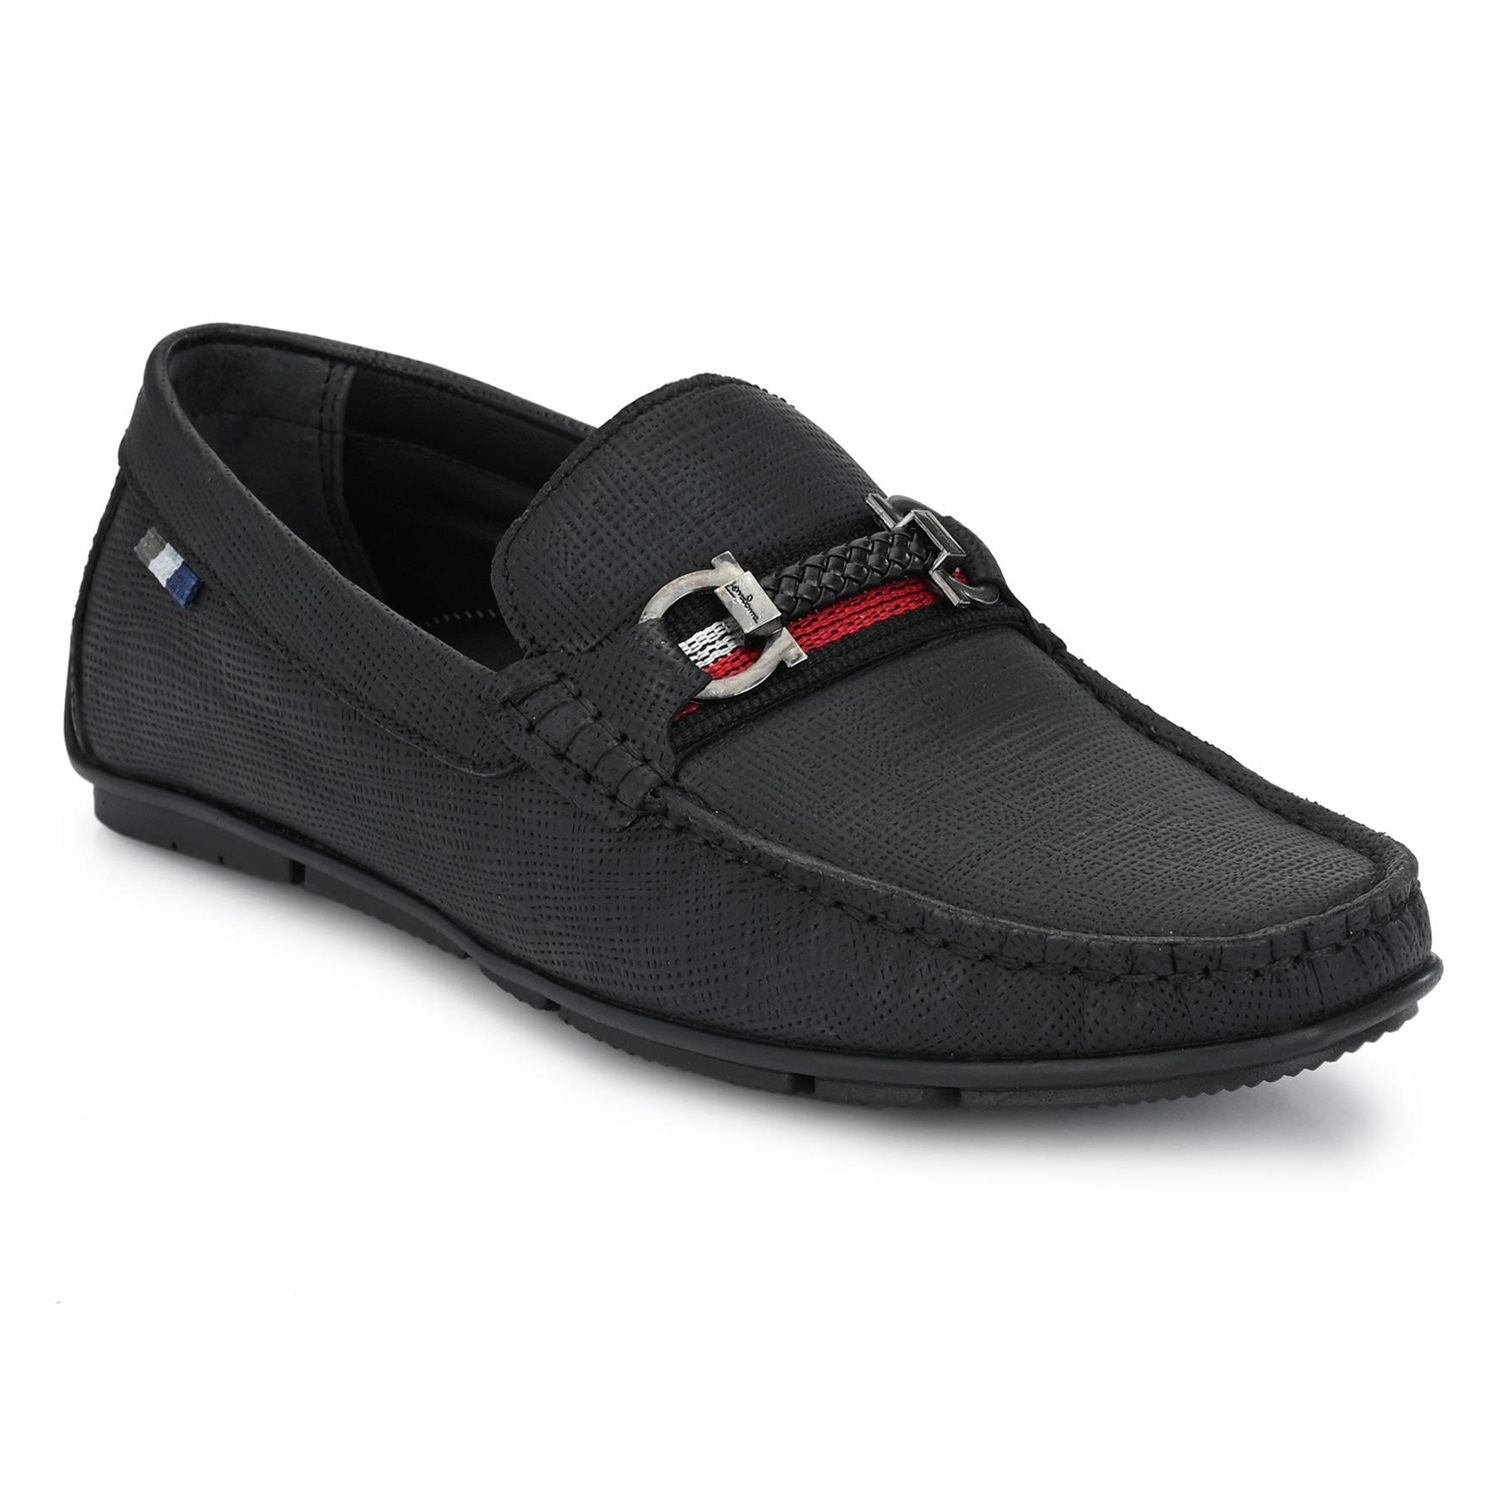 Hitz   Hitz Black Genuine Leather Casual Loafers with Slip-On Fastening